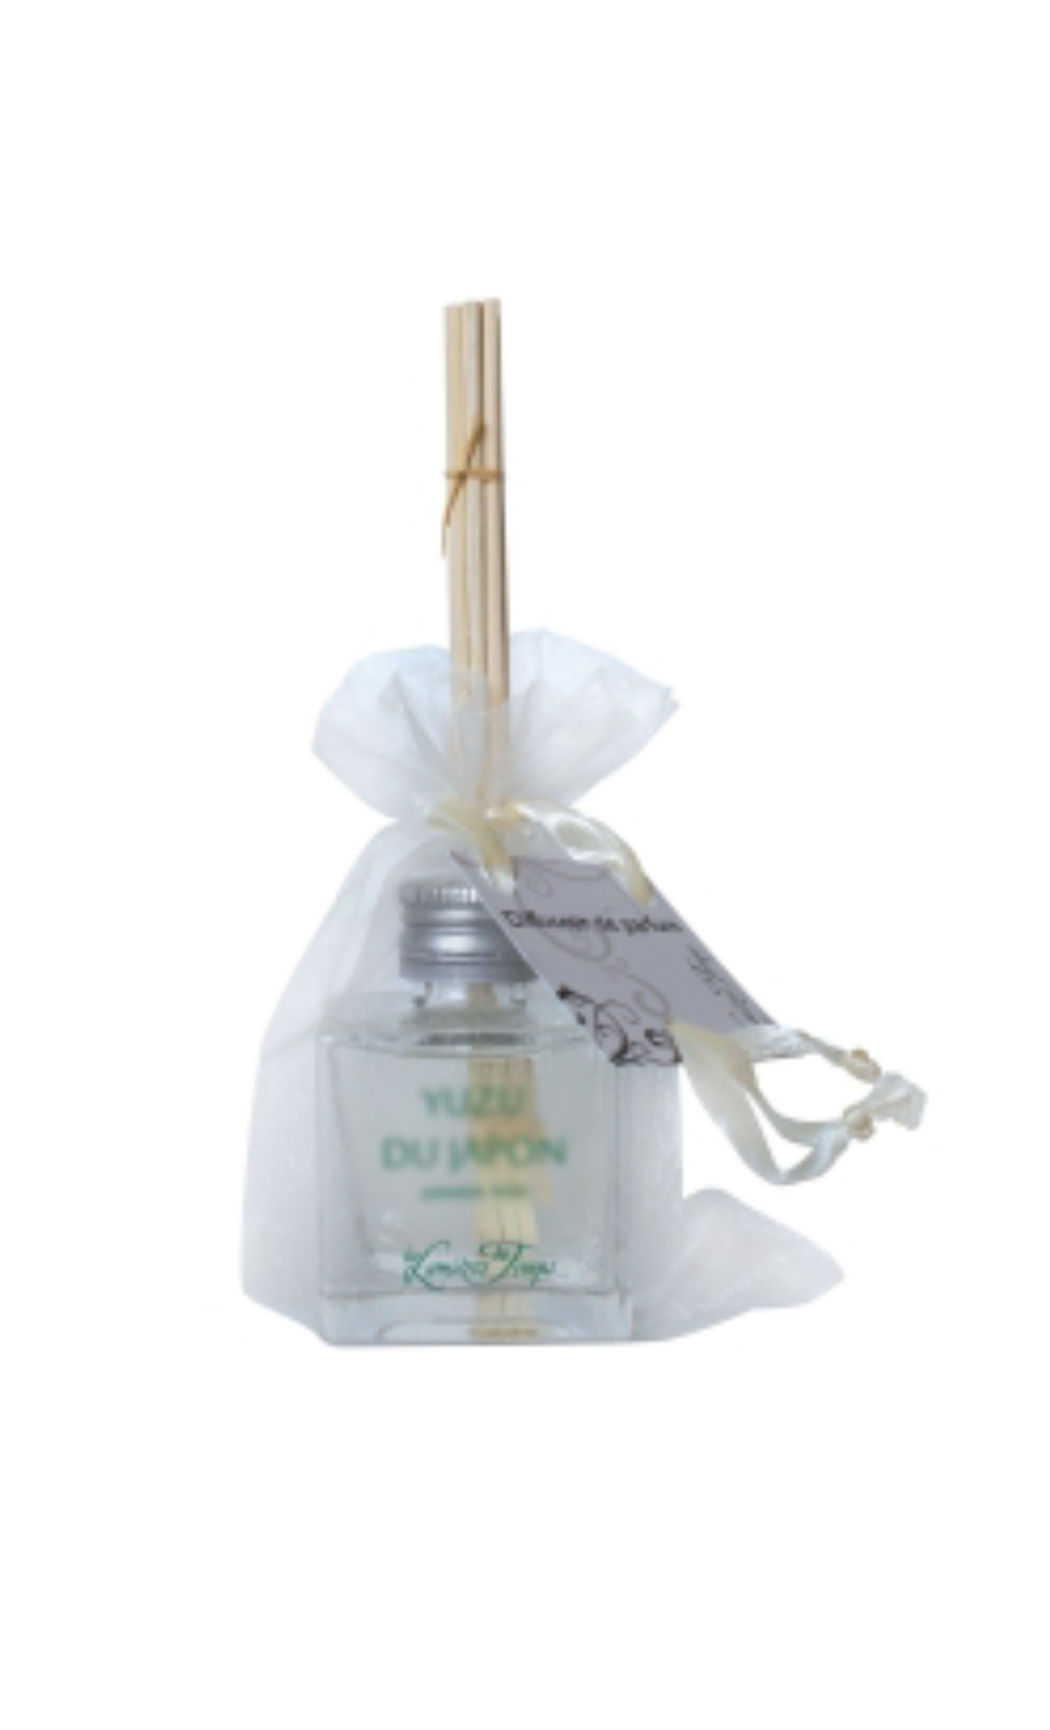 Bergamot Fragrance Reed Diffuser Sticks by Les Lumieres du Temps - Shop Aromatic Reed Diffusers Online